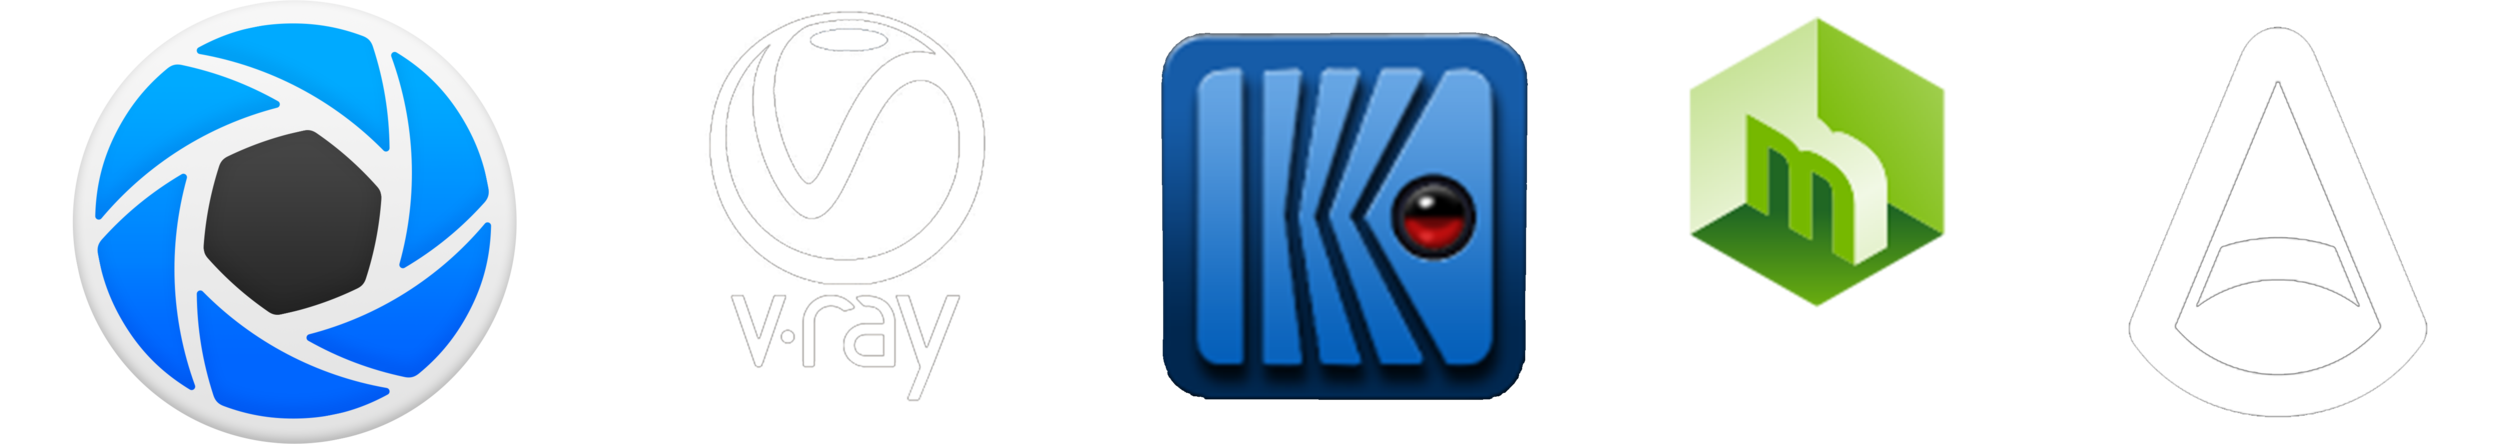 AppIcon_4.png